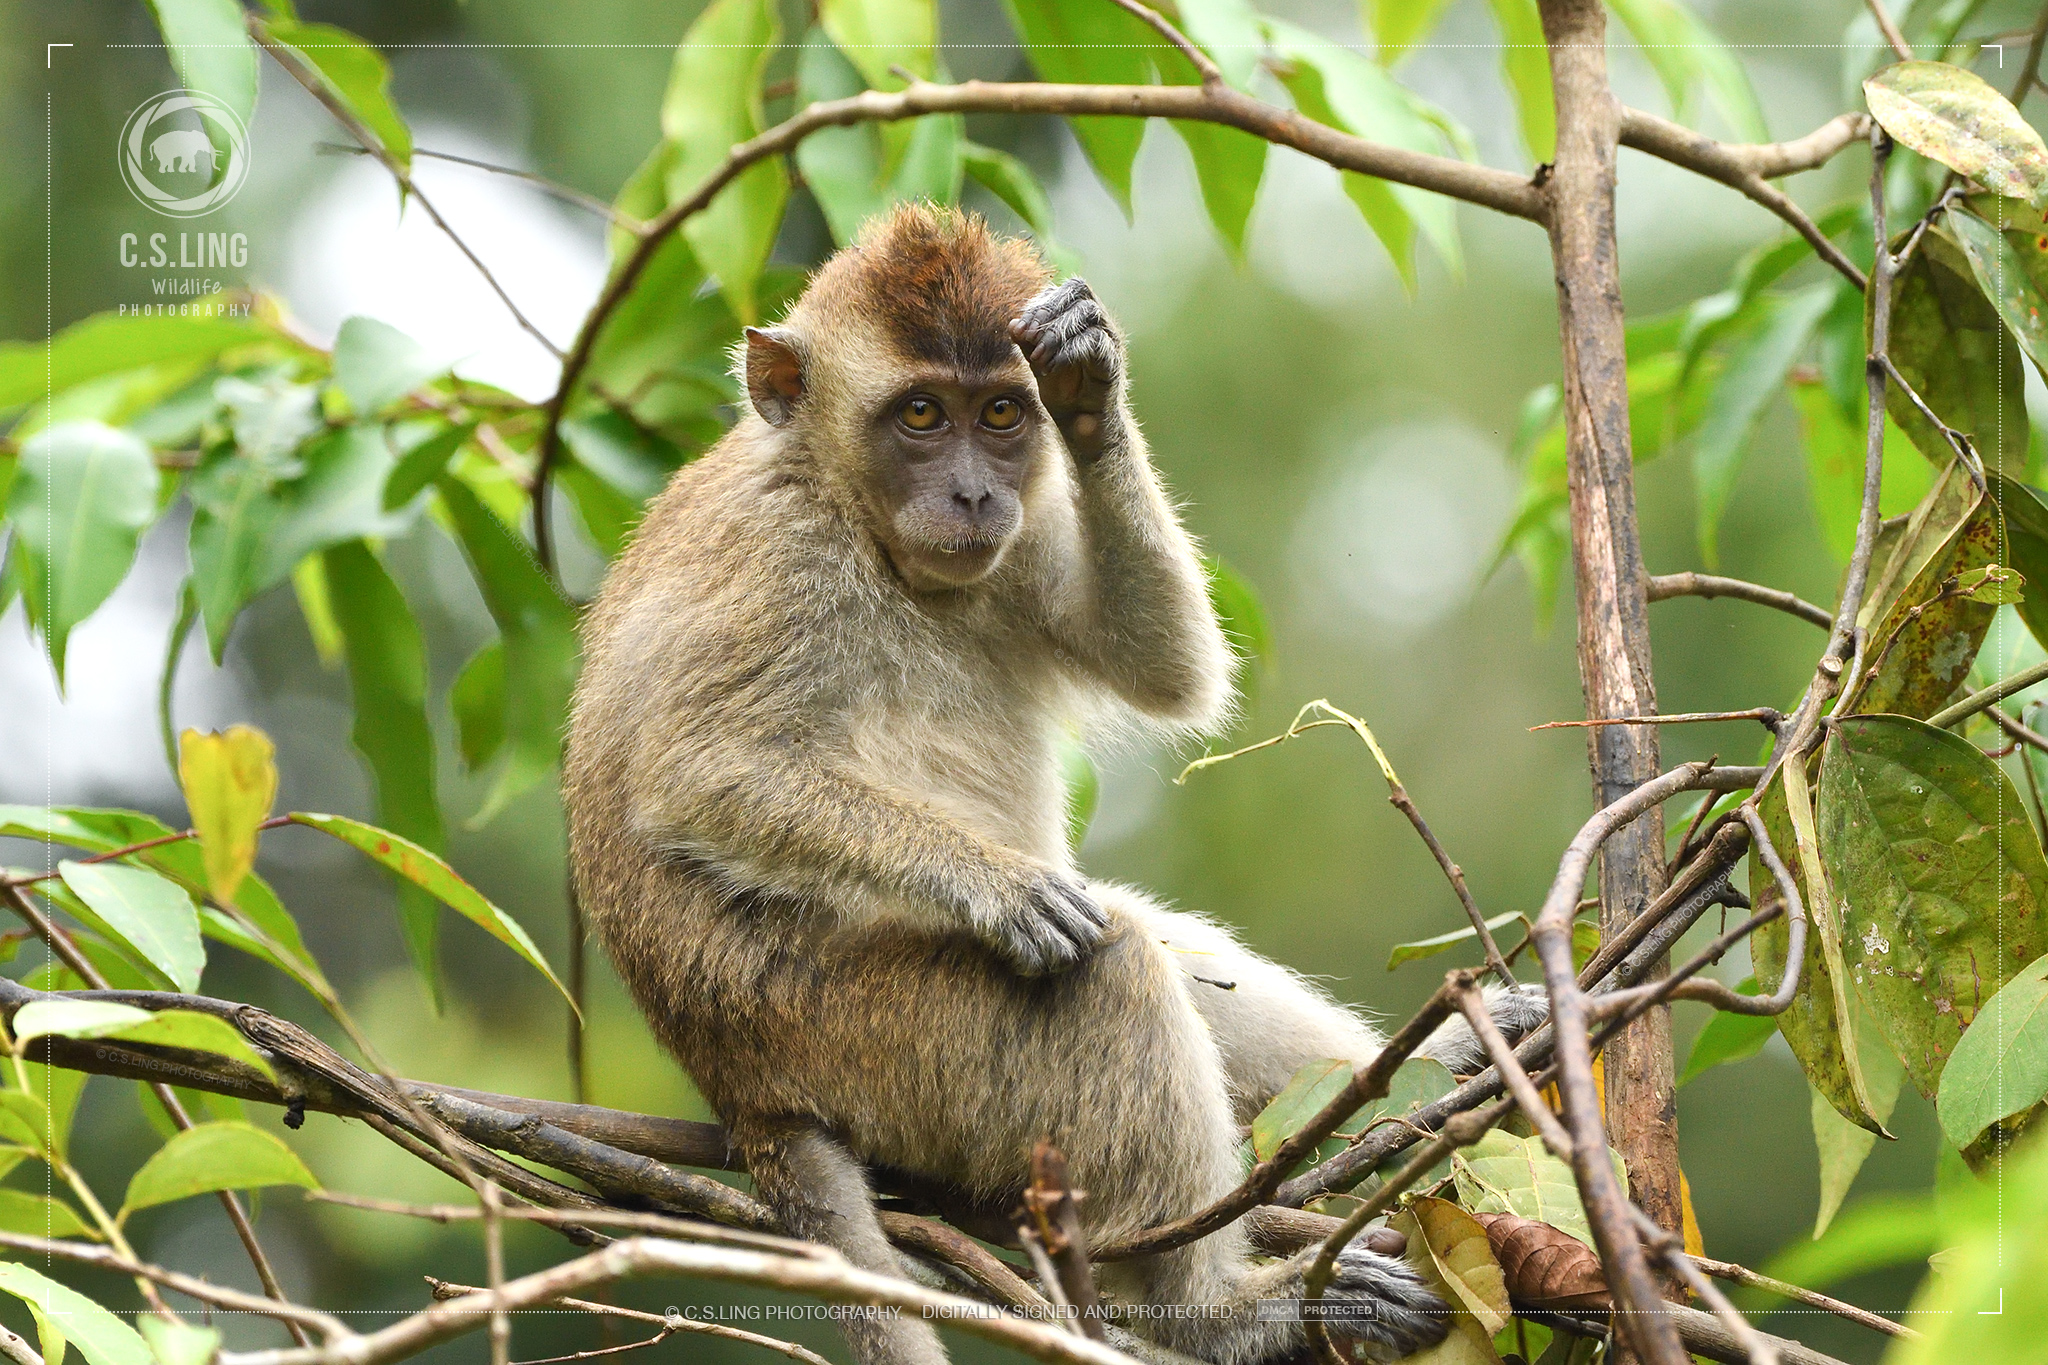 Nikon D500 Photos: Long-tailed Macaque Wildlife by C.S.Ling